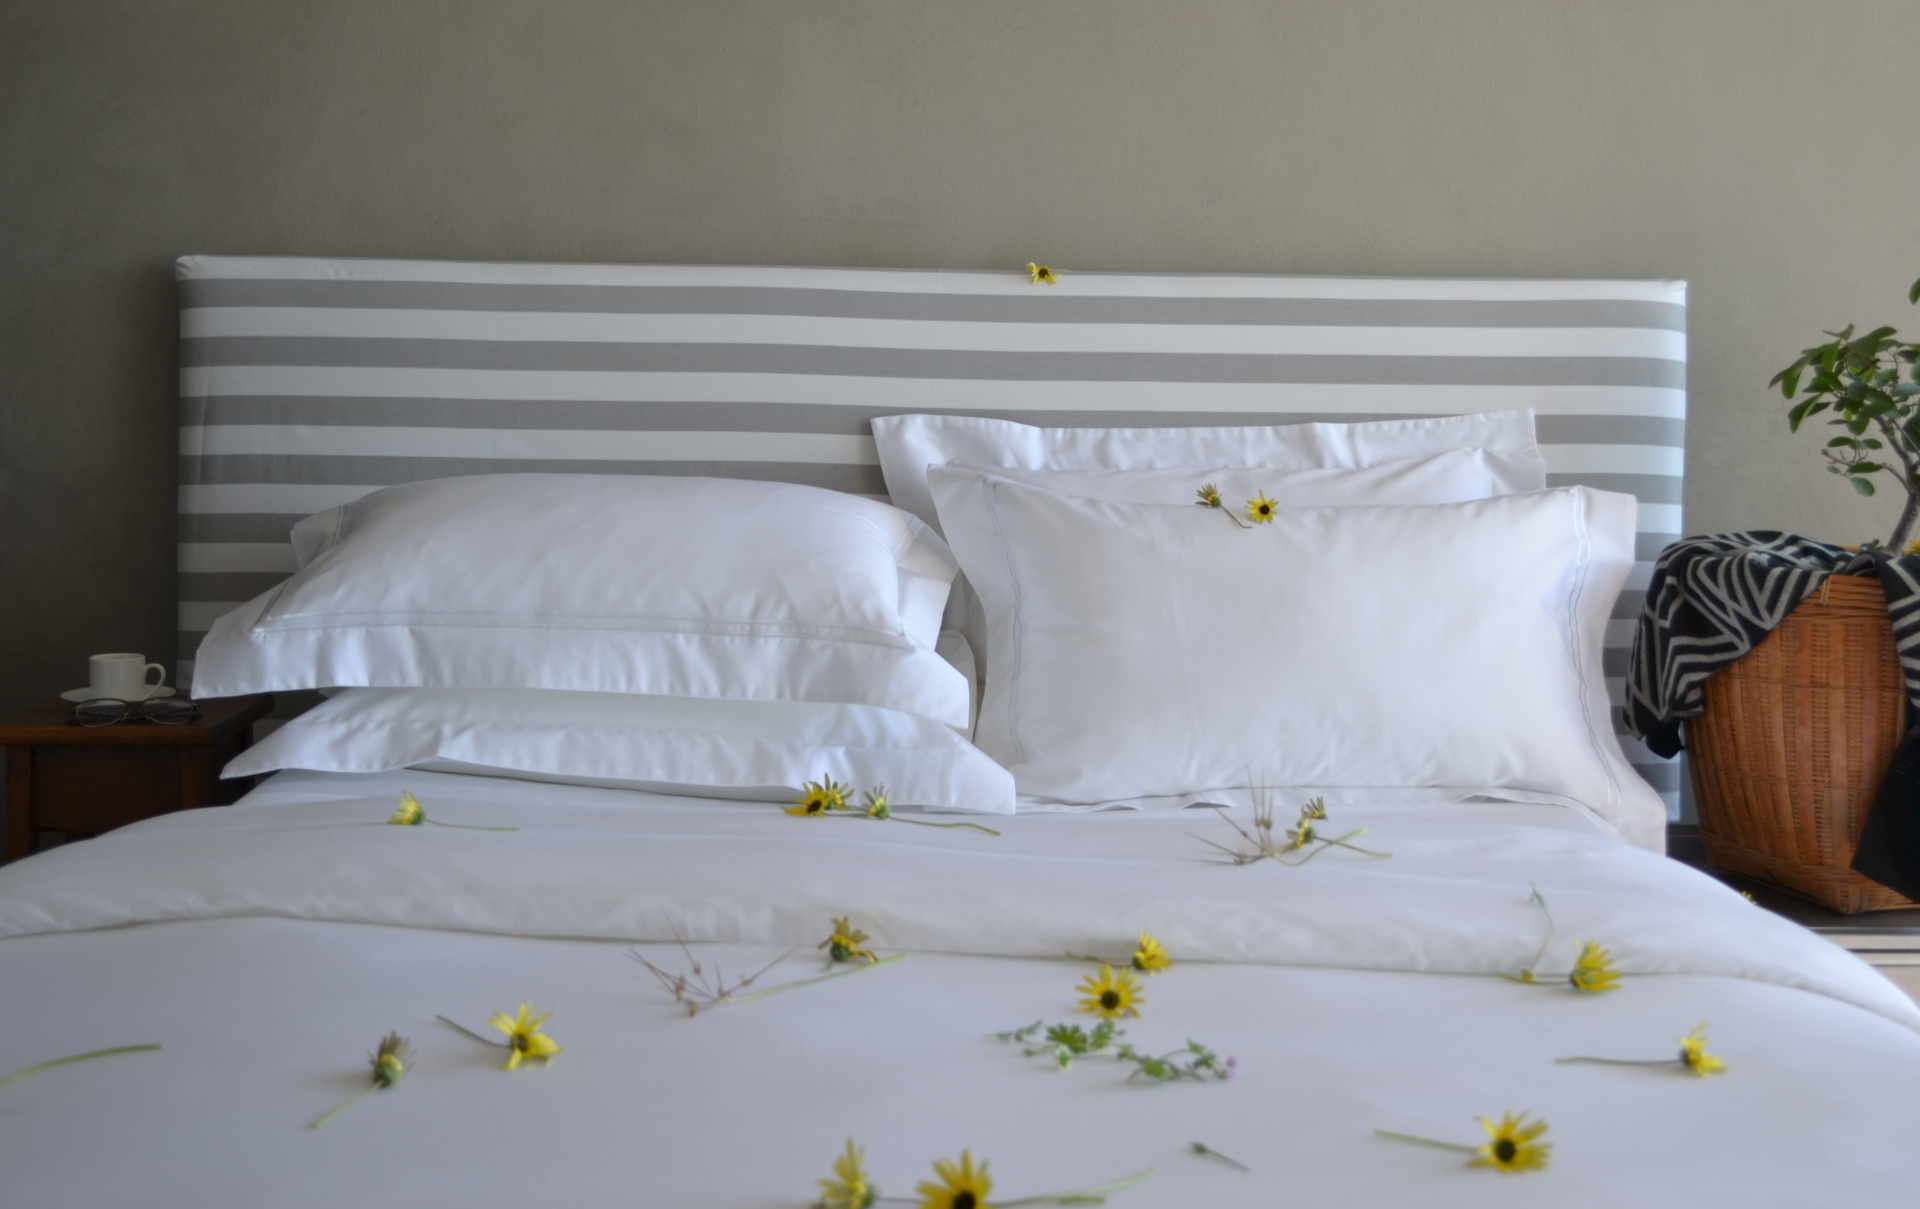 Helpful Tips For Spring Cleaning Your Bed And Bedding